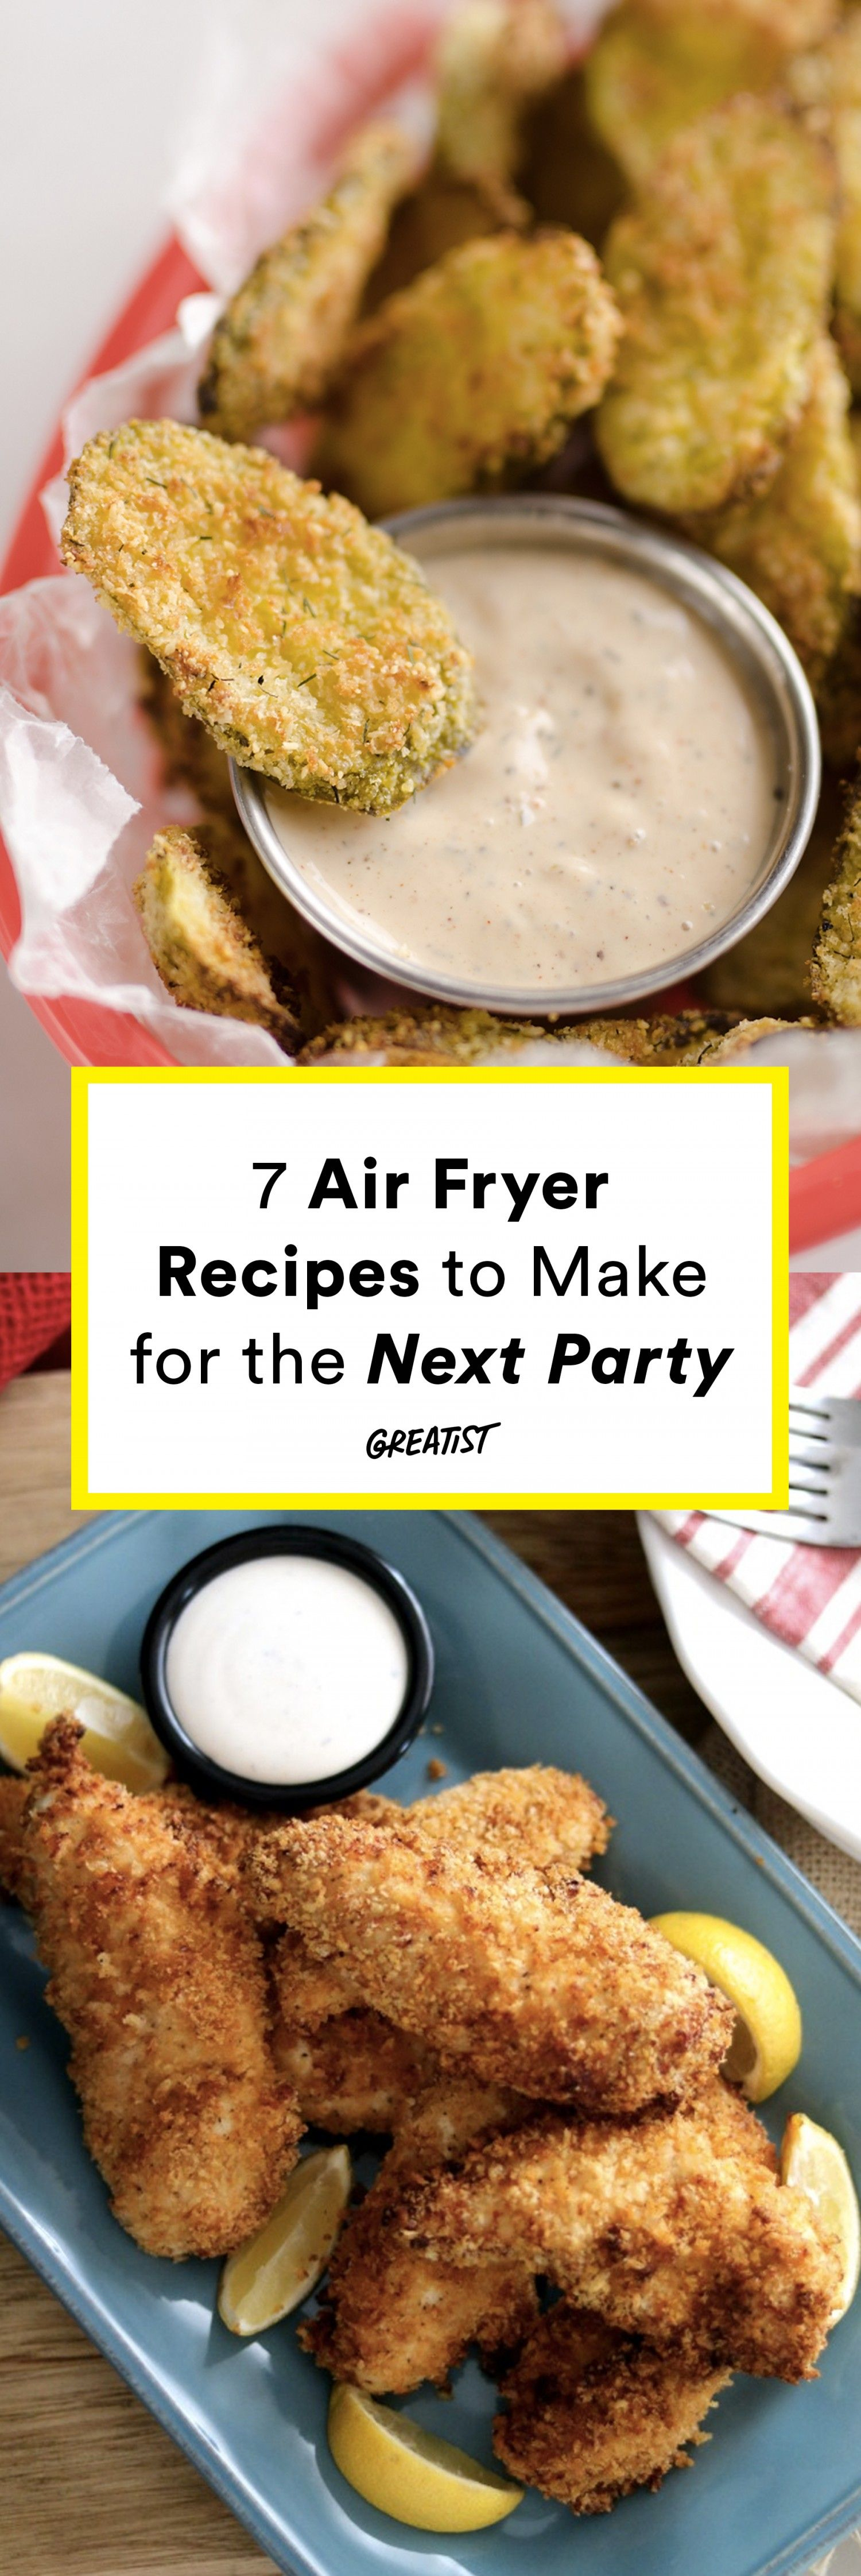 Air Fryer Recipes: 7 Party Foods That Arent Loaded With Fat